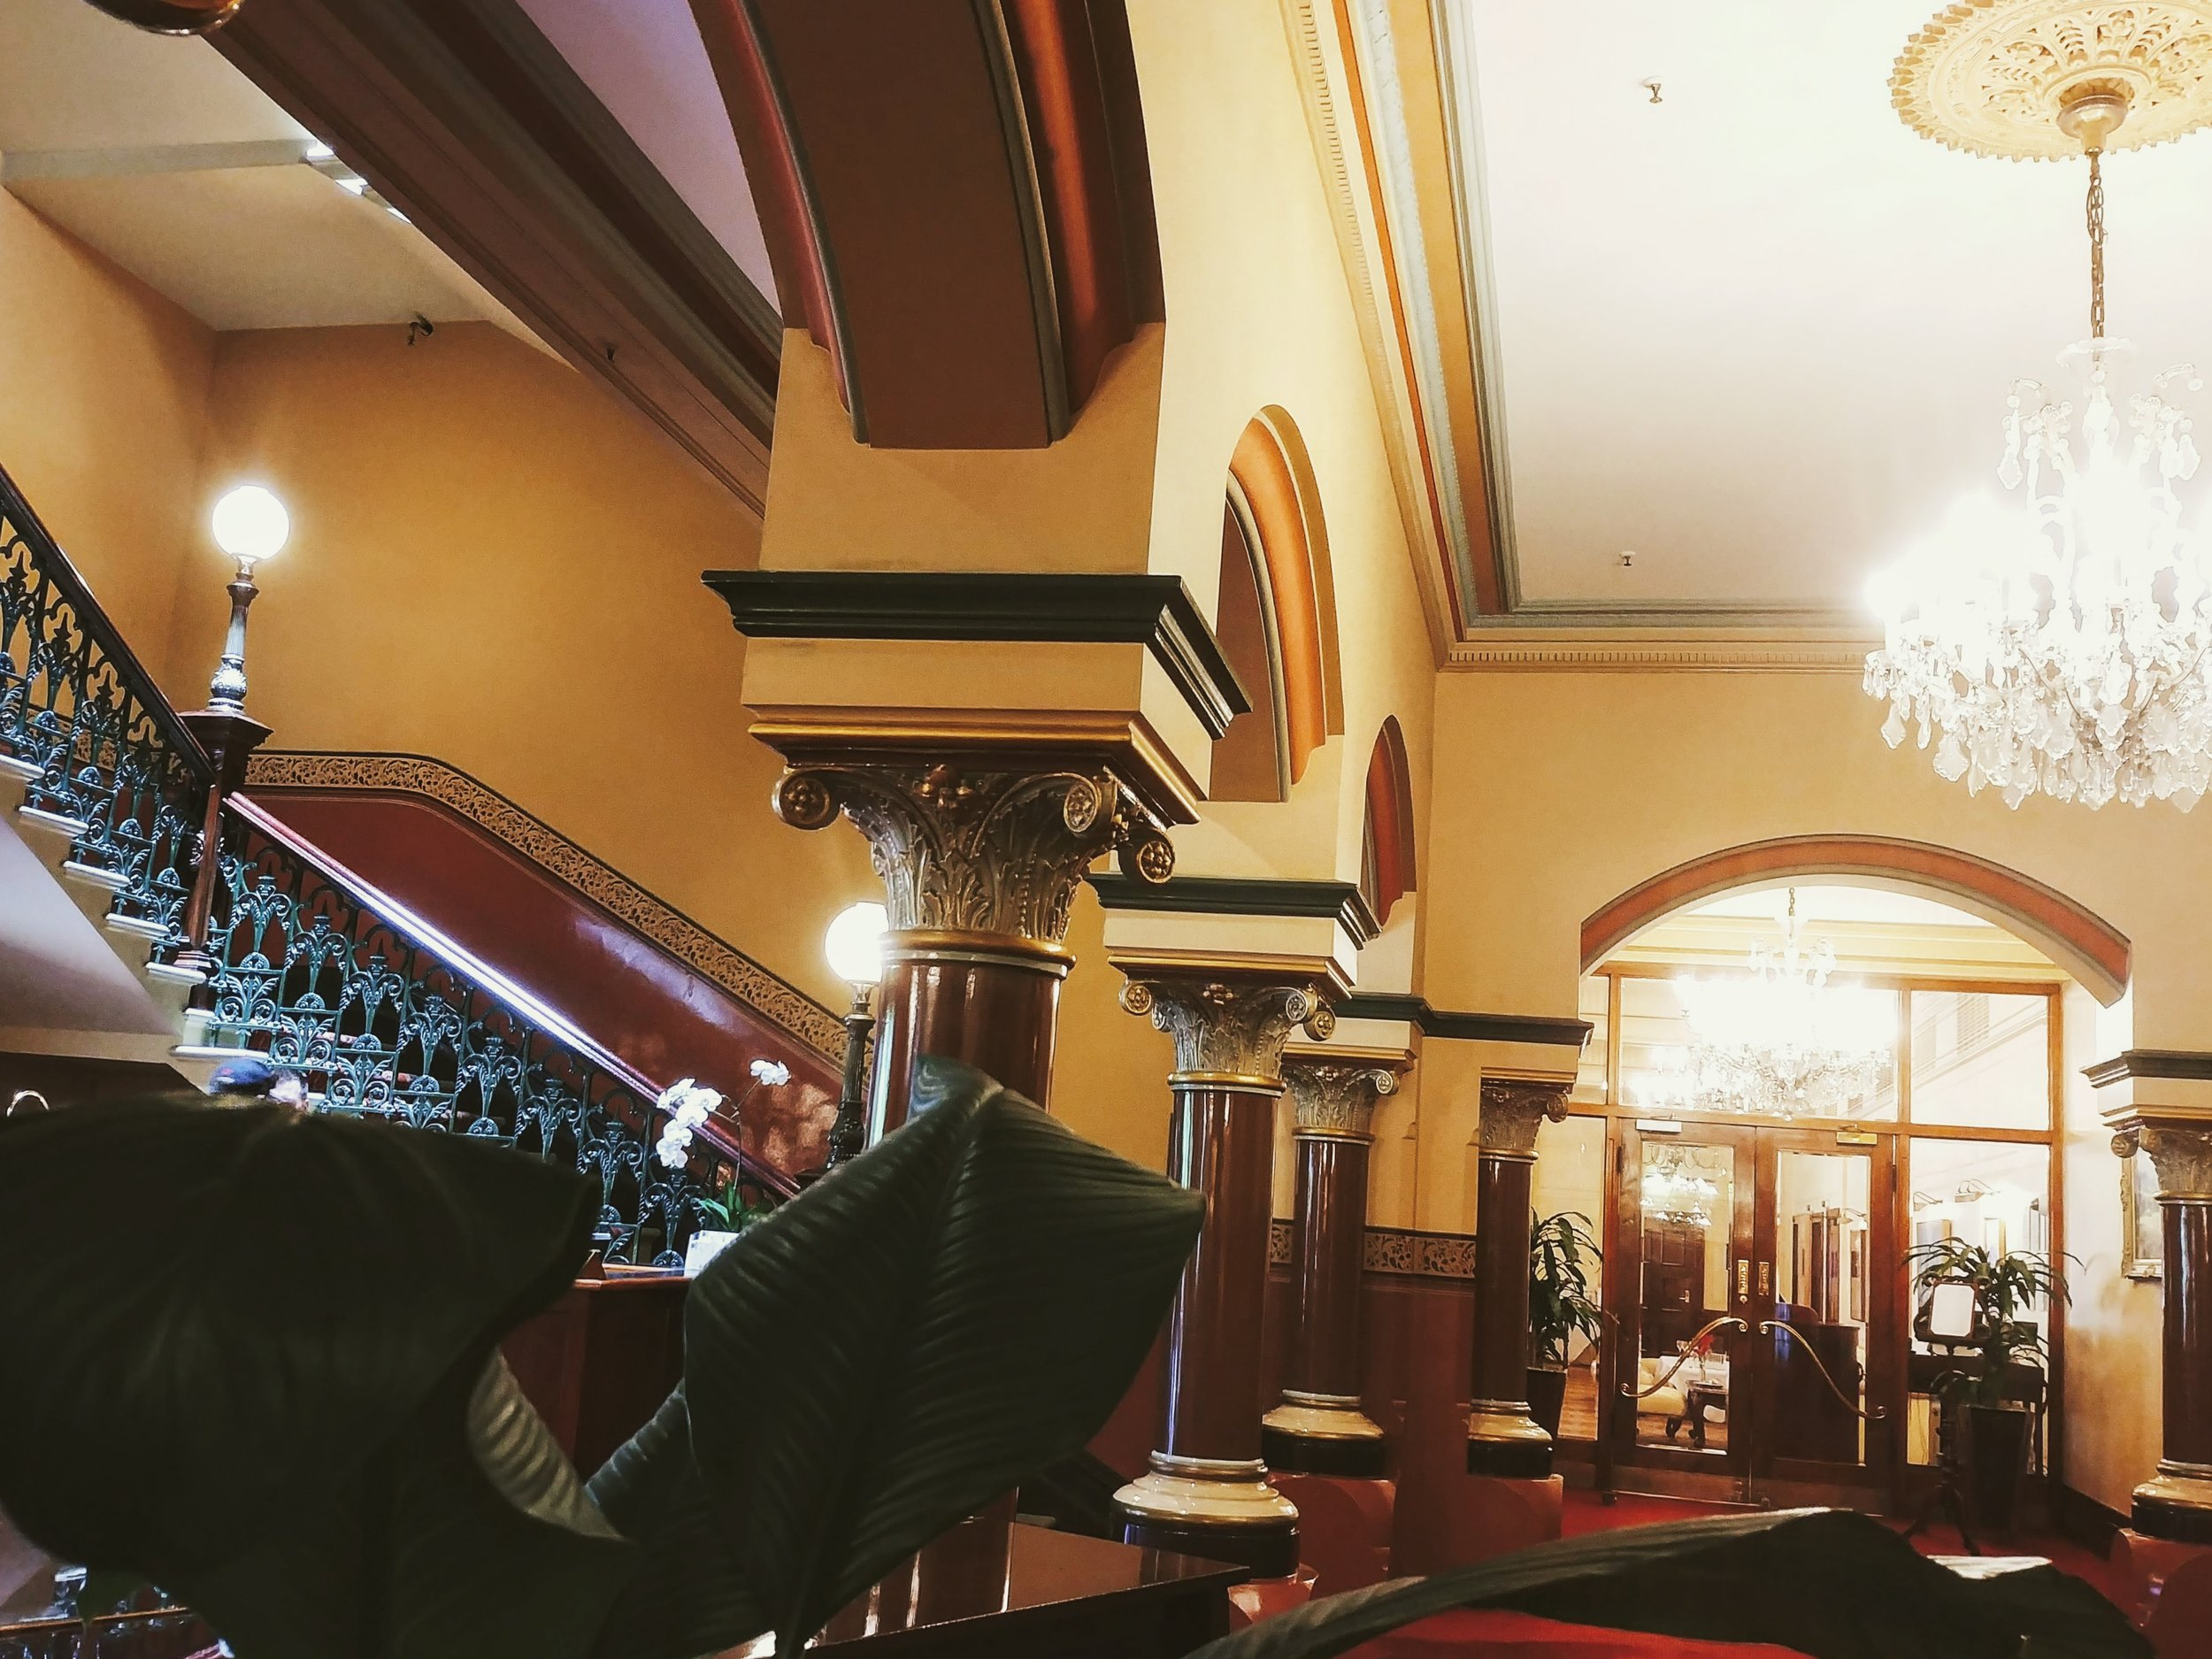 Lobby with the grand staircase, grand piano and towards the grand ballroom